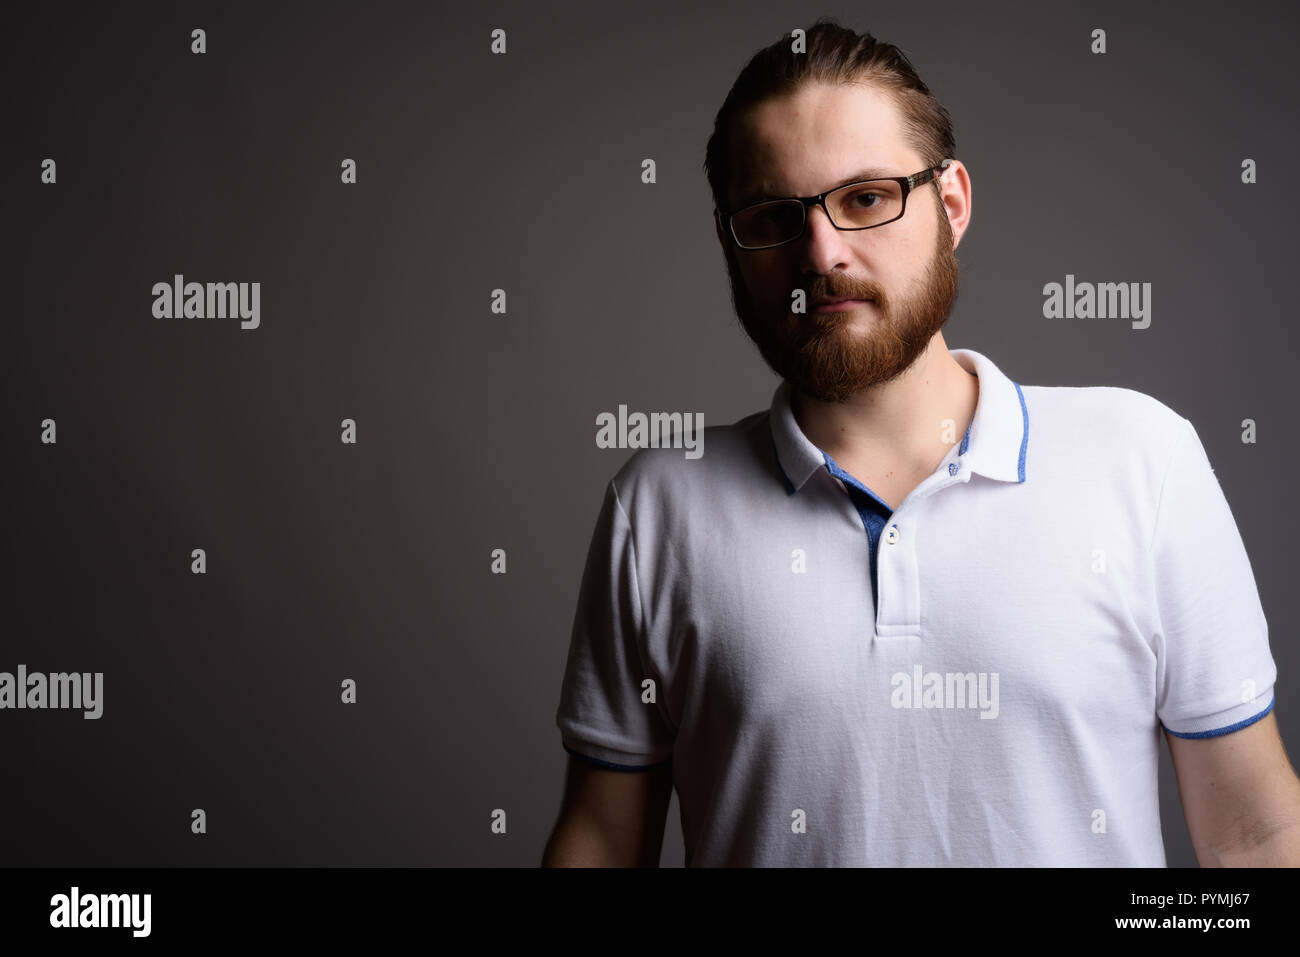 Young bearded man wearing white polo shirt against gray backgrou - Stock Image